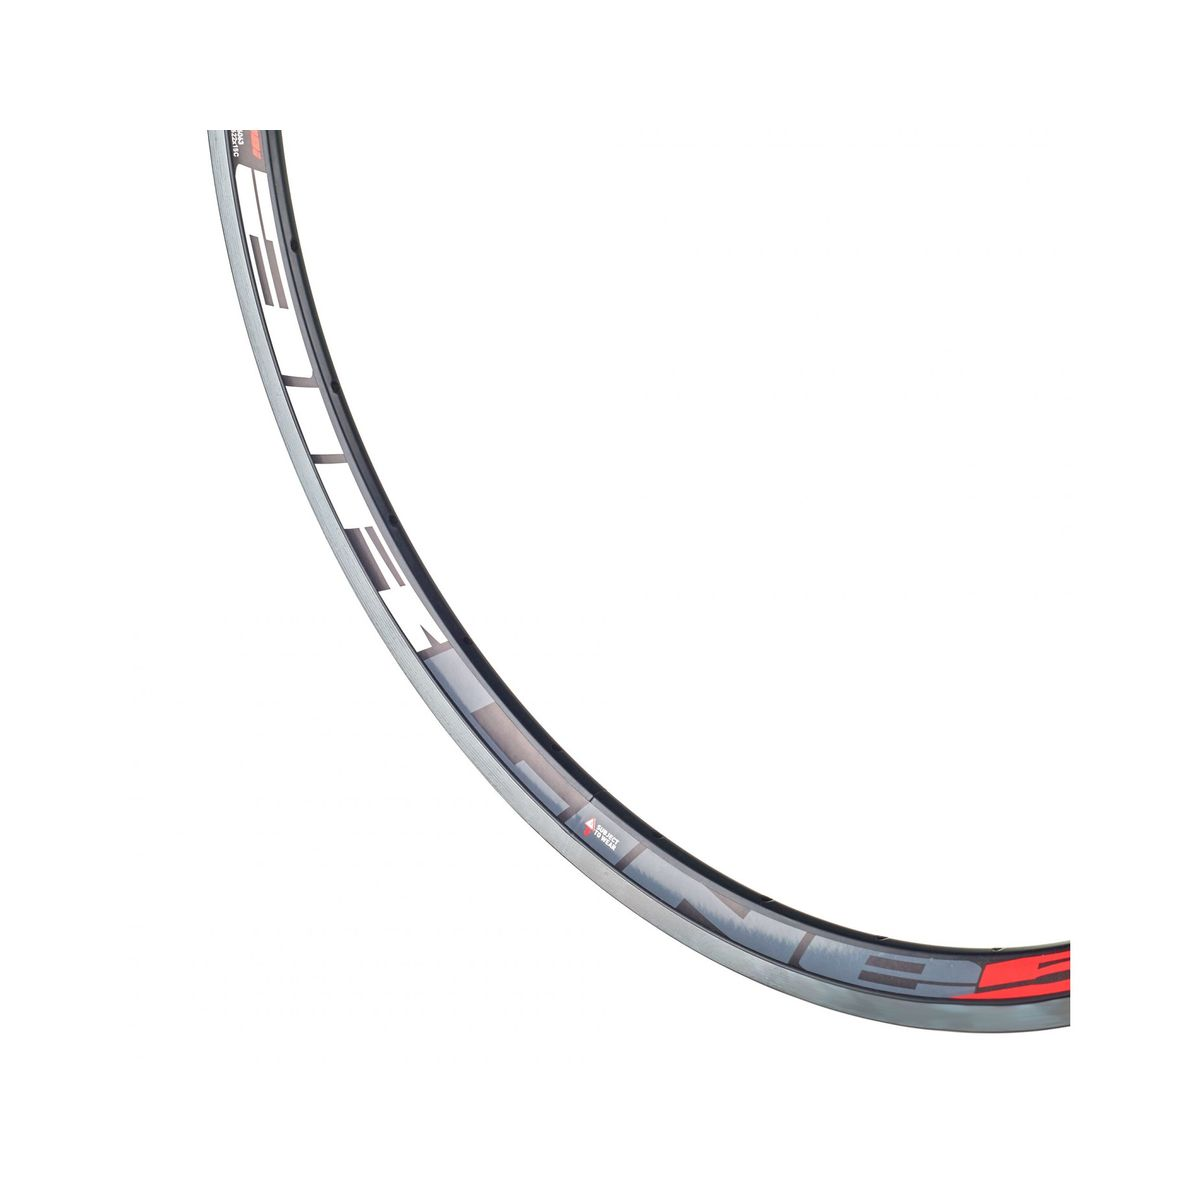 Airline 5 road bike rim 28